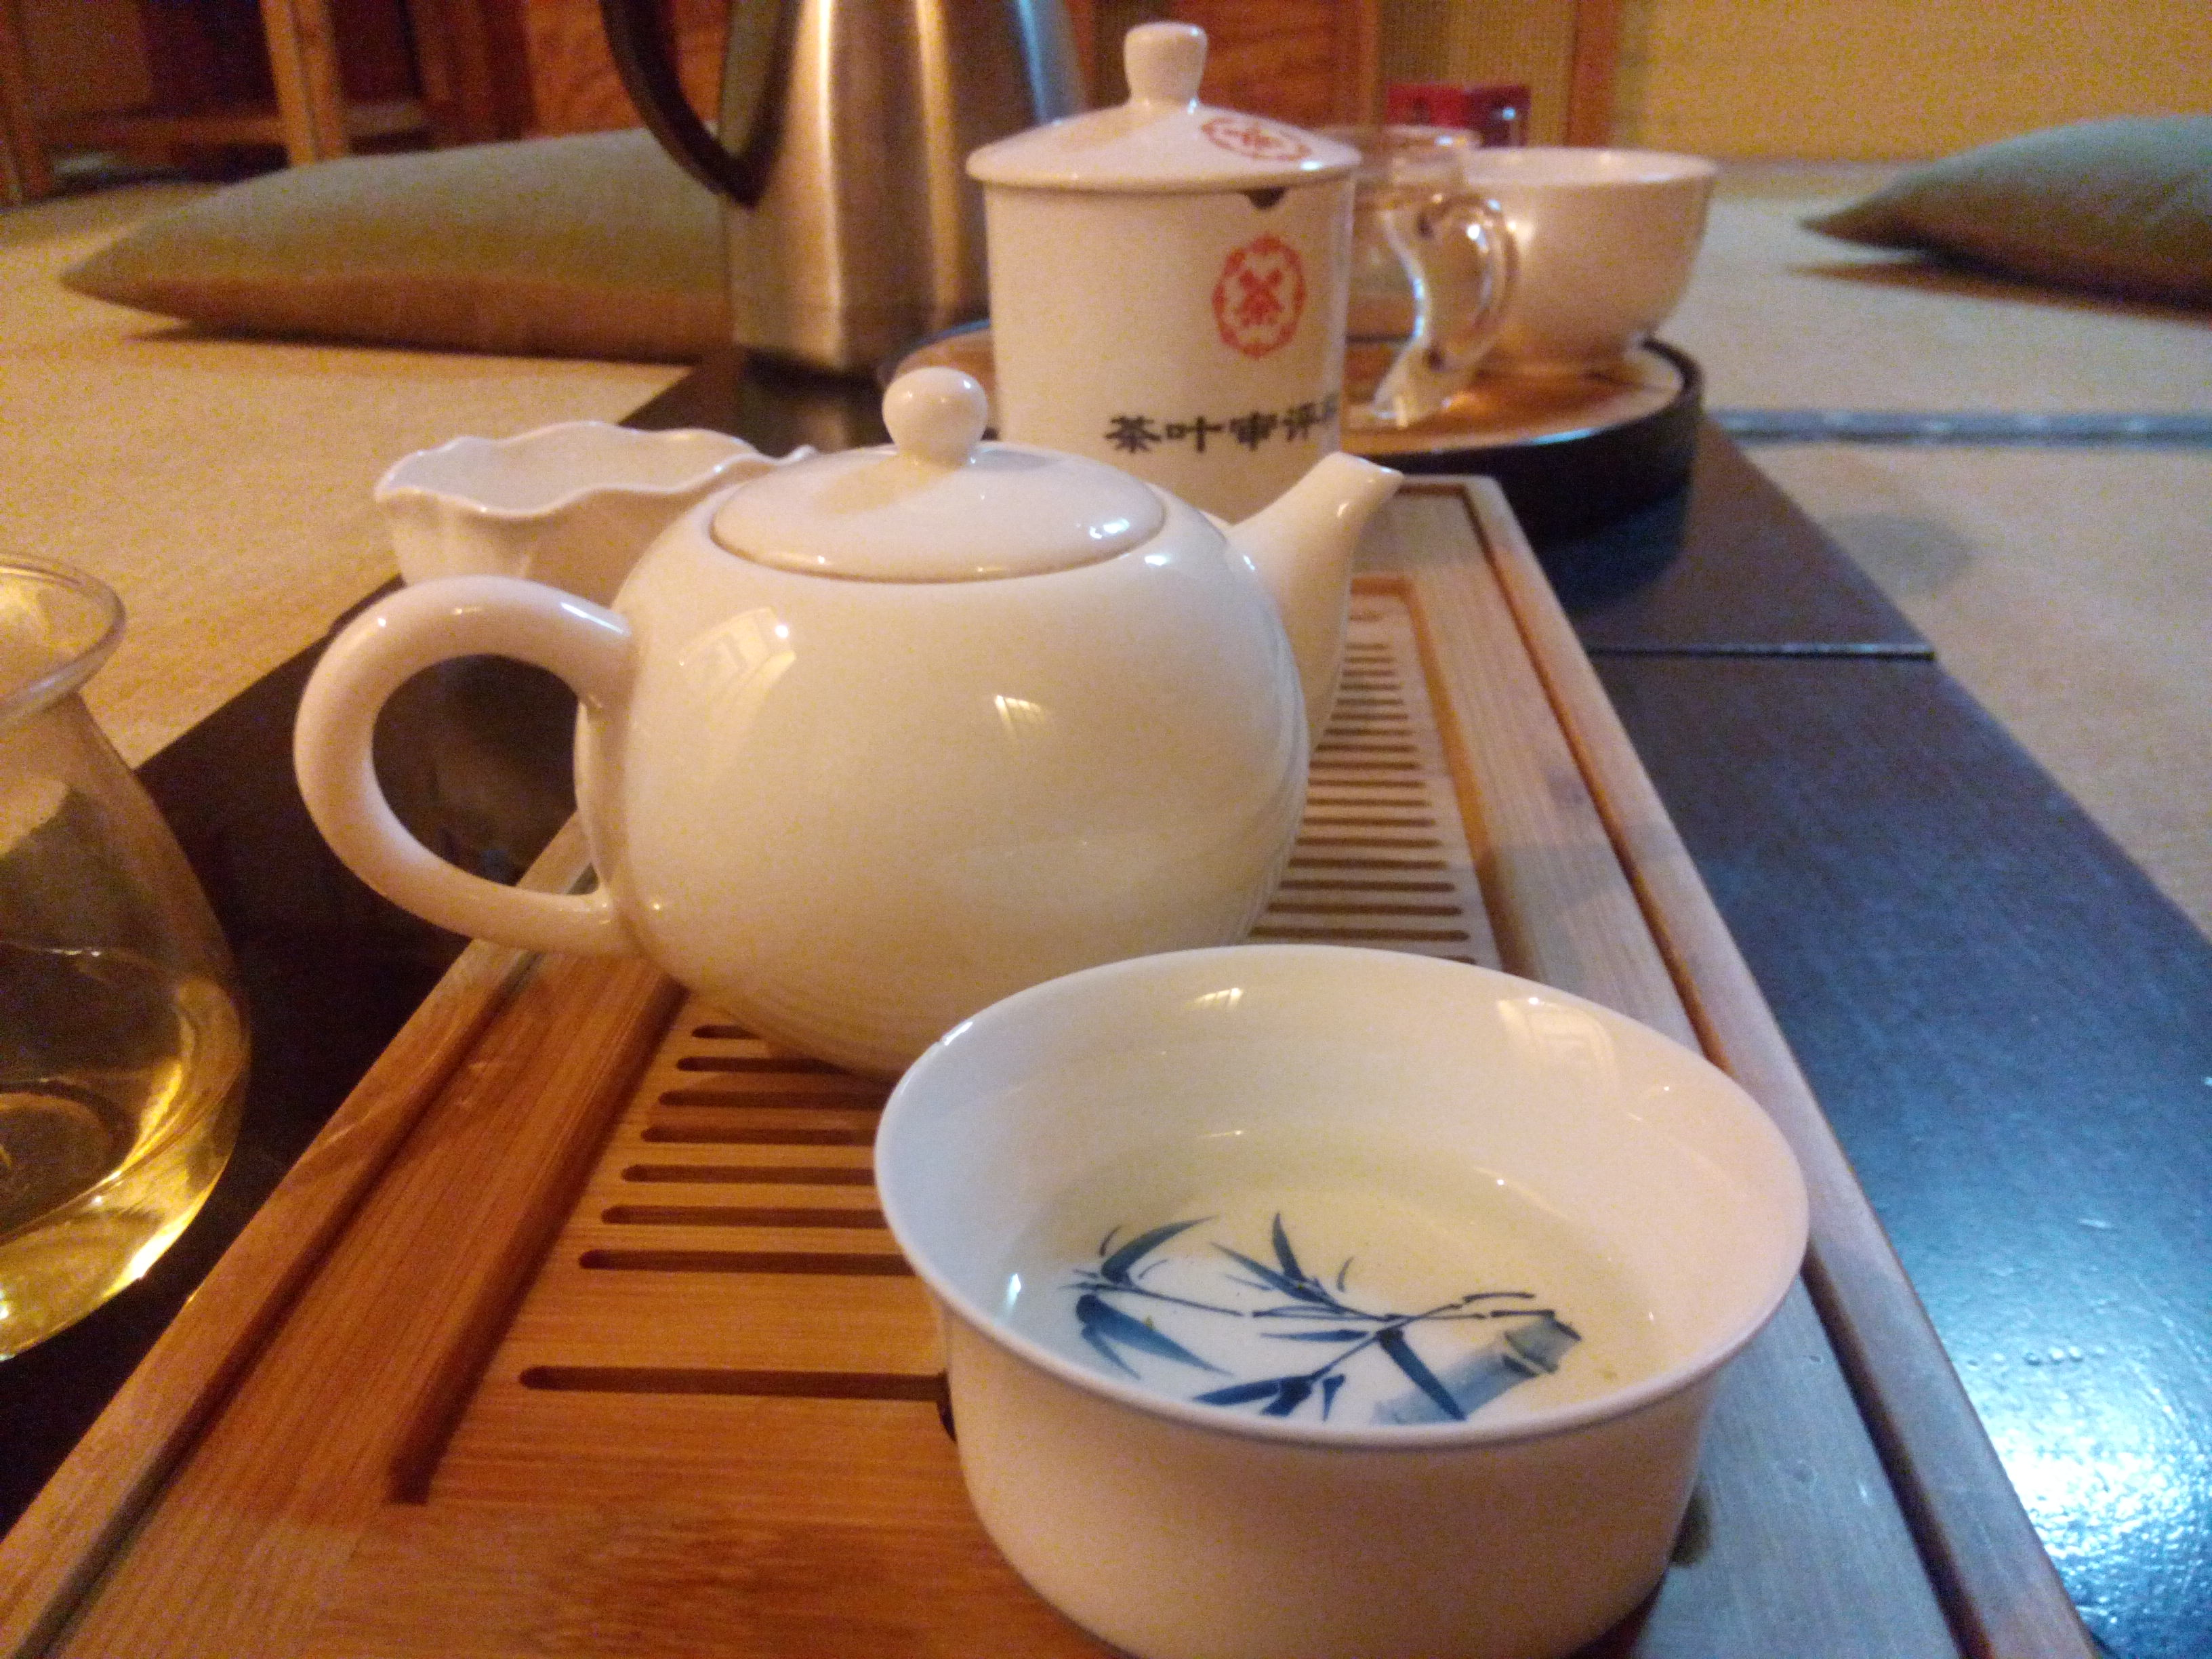 A white cup and teapot on a wooden board